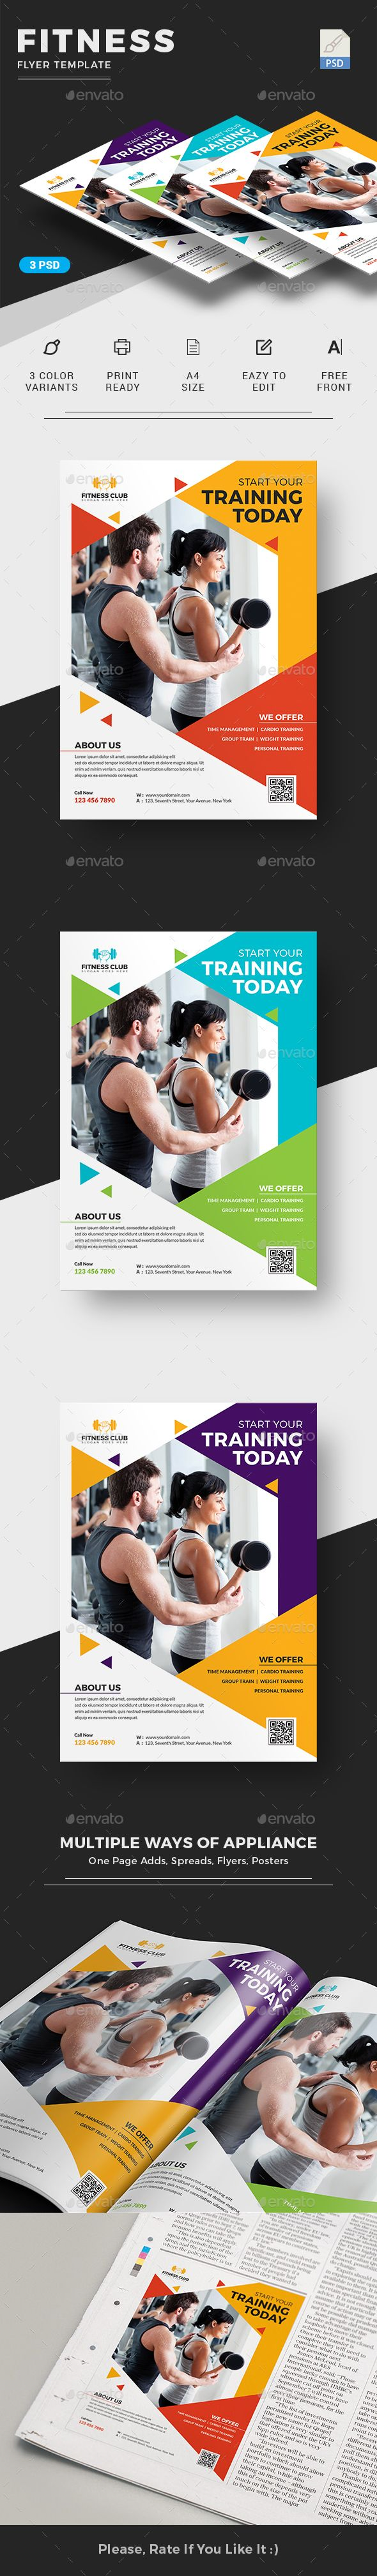 Fitness Flyer  Flyer Template Magazine Ads And Newspaper